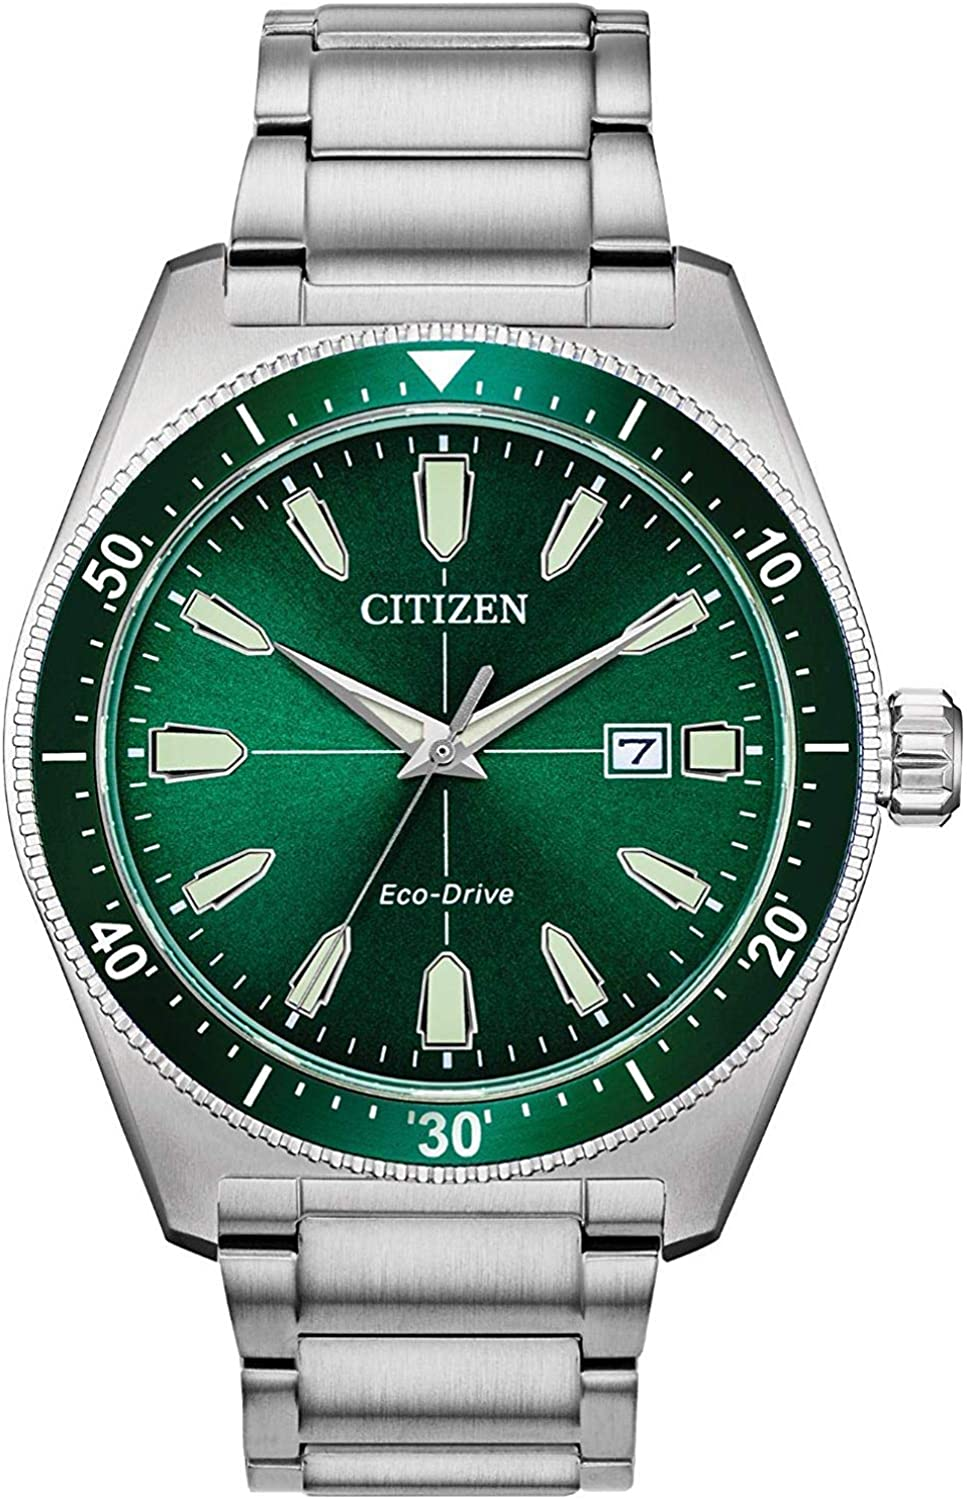 Citizen Eco Drive Silver Tone Watch with Green Face